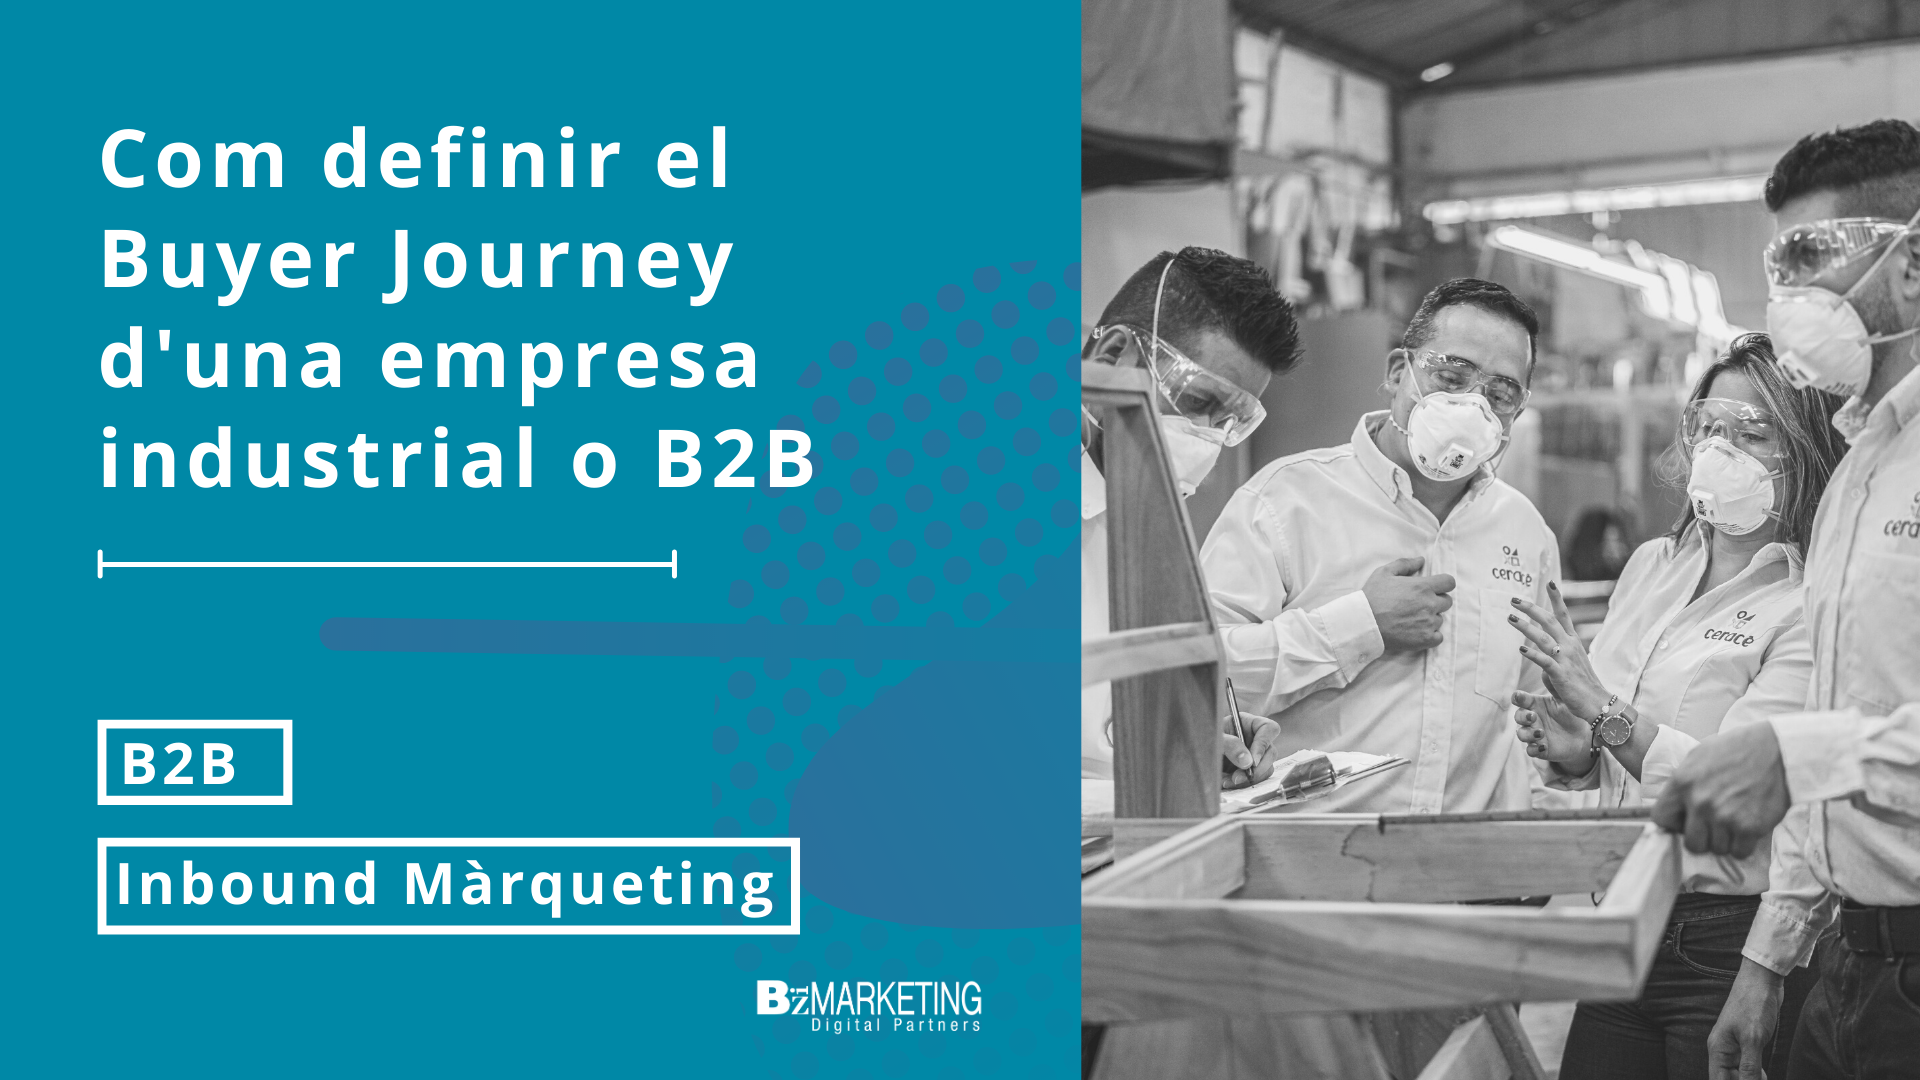 Com definir el Buyer Journey d'una empresa industrial B2B Inbound Marketing BizaMarketing